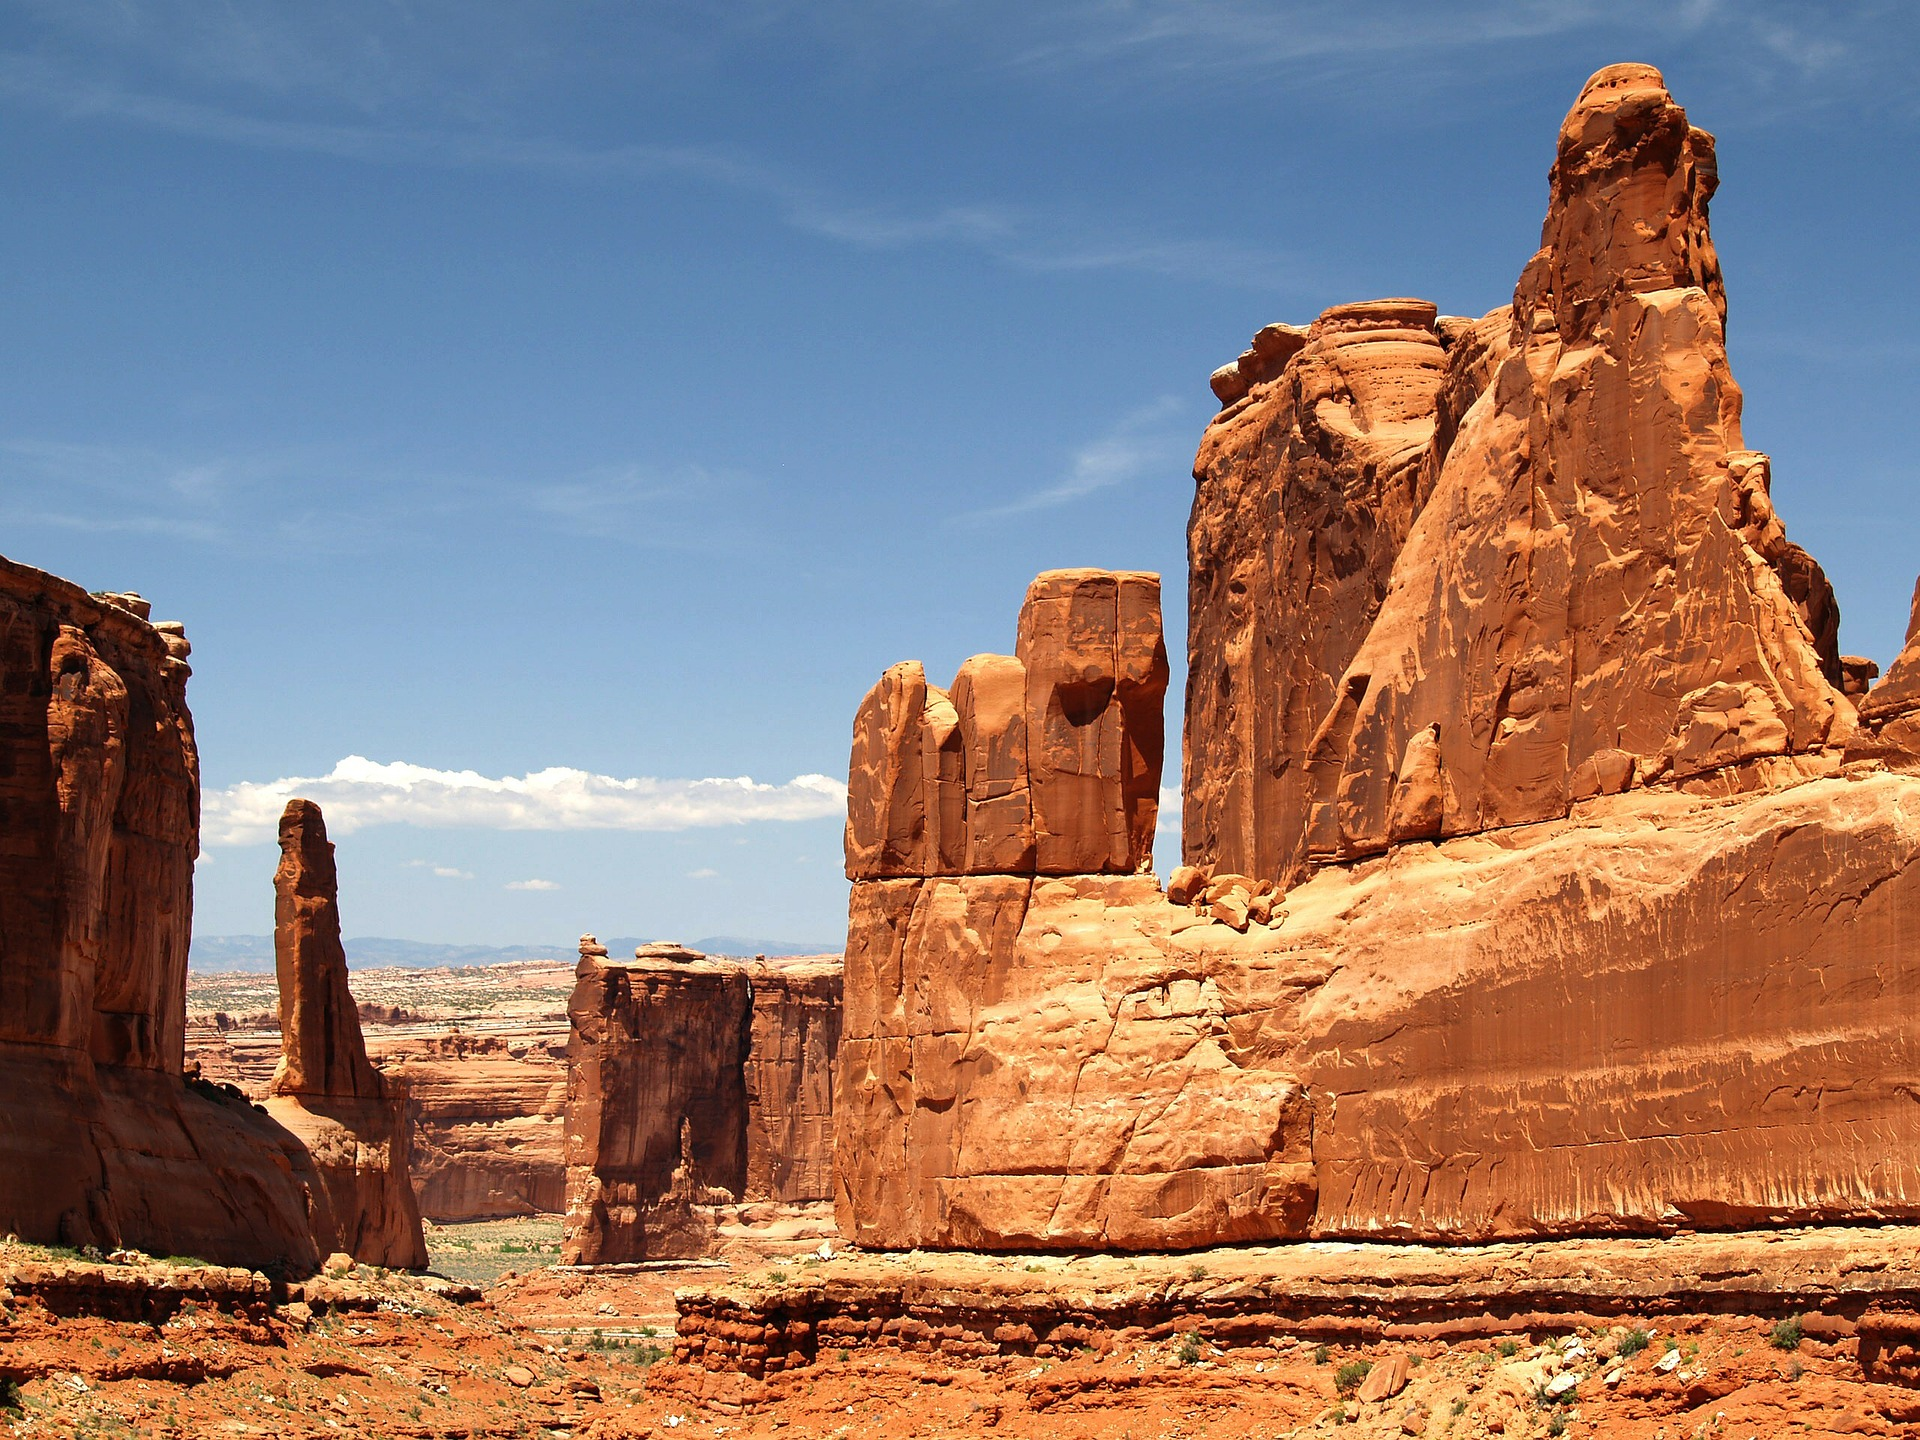 arches-national-park-53621_1920.jpg